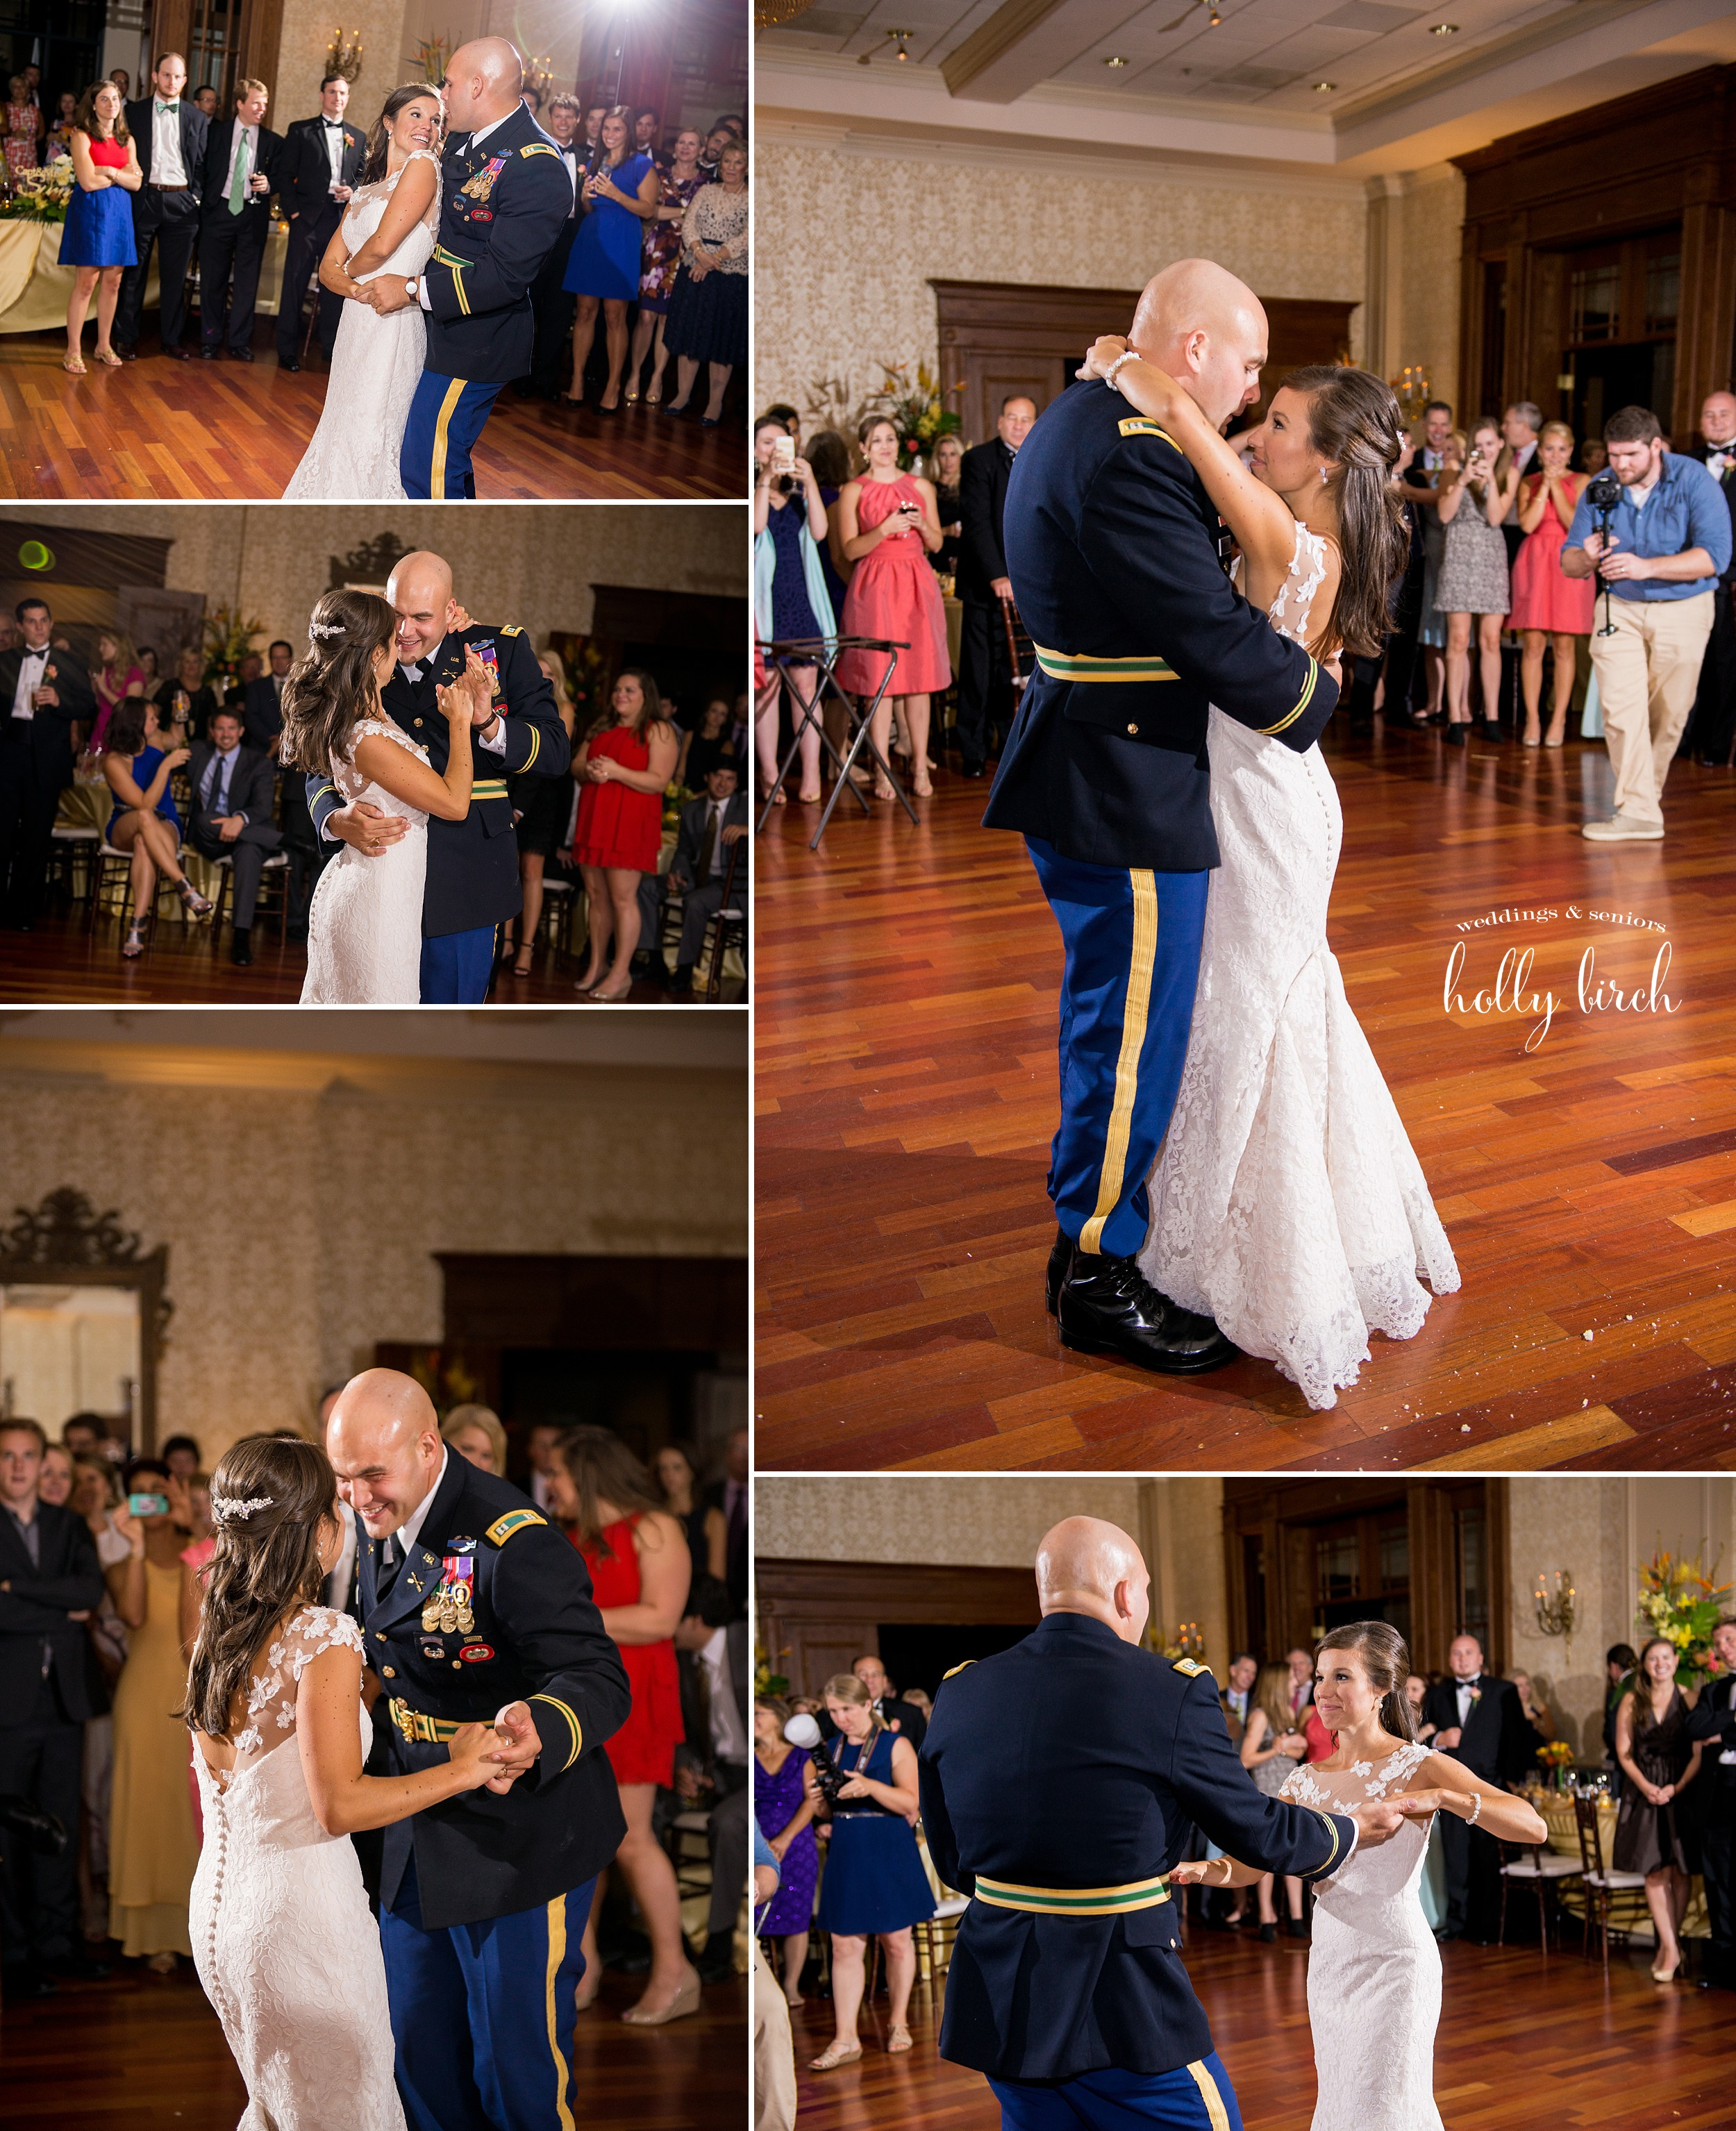 bride and groom first dance pictures in ballroom